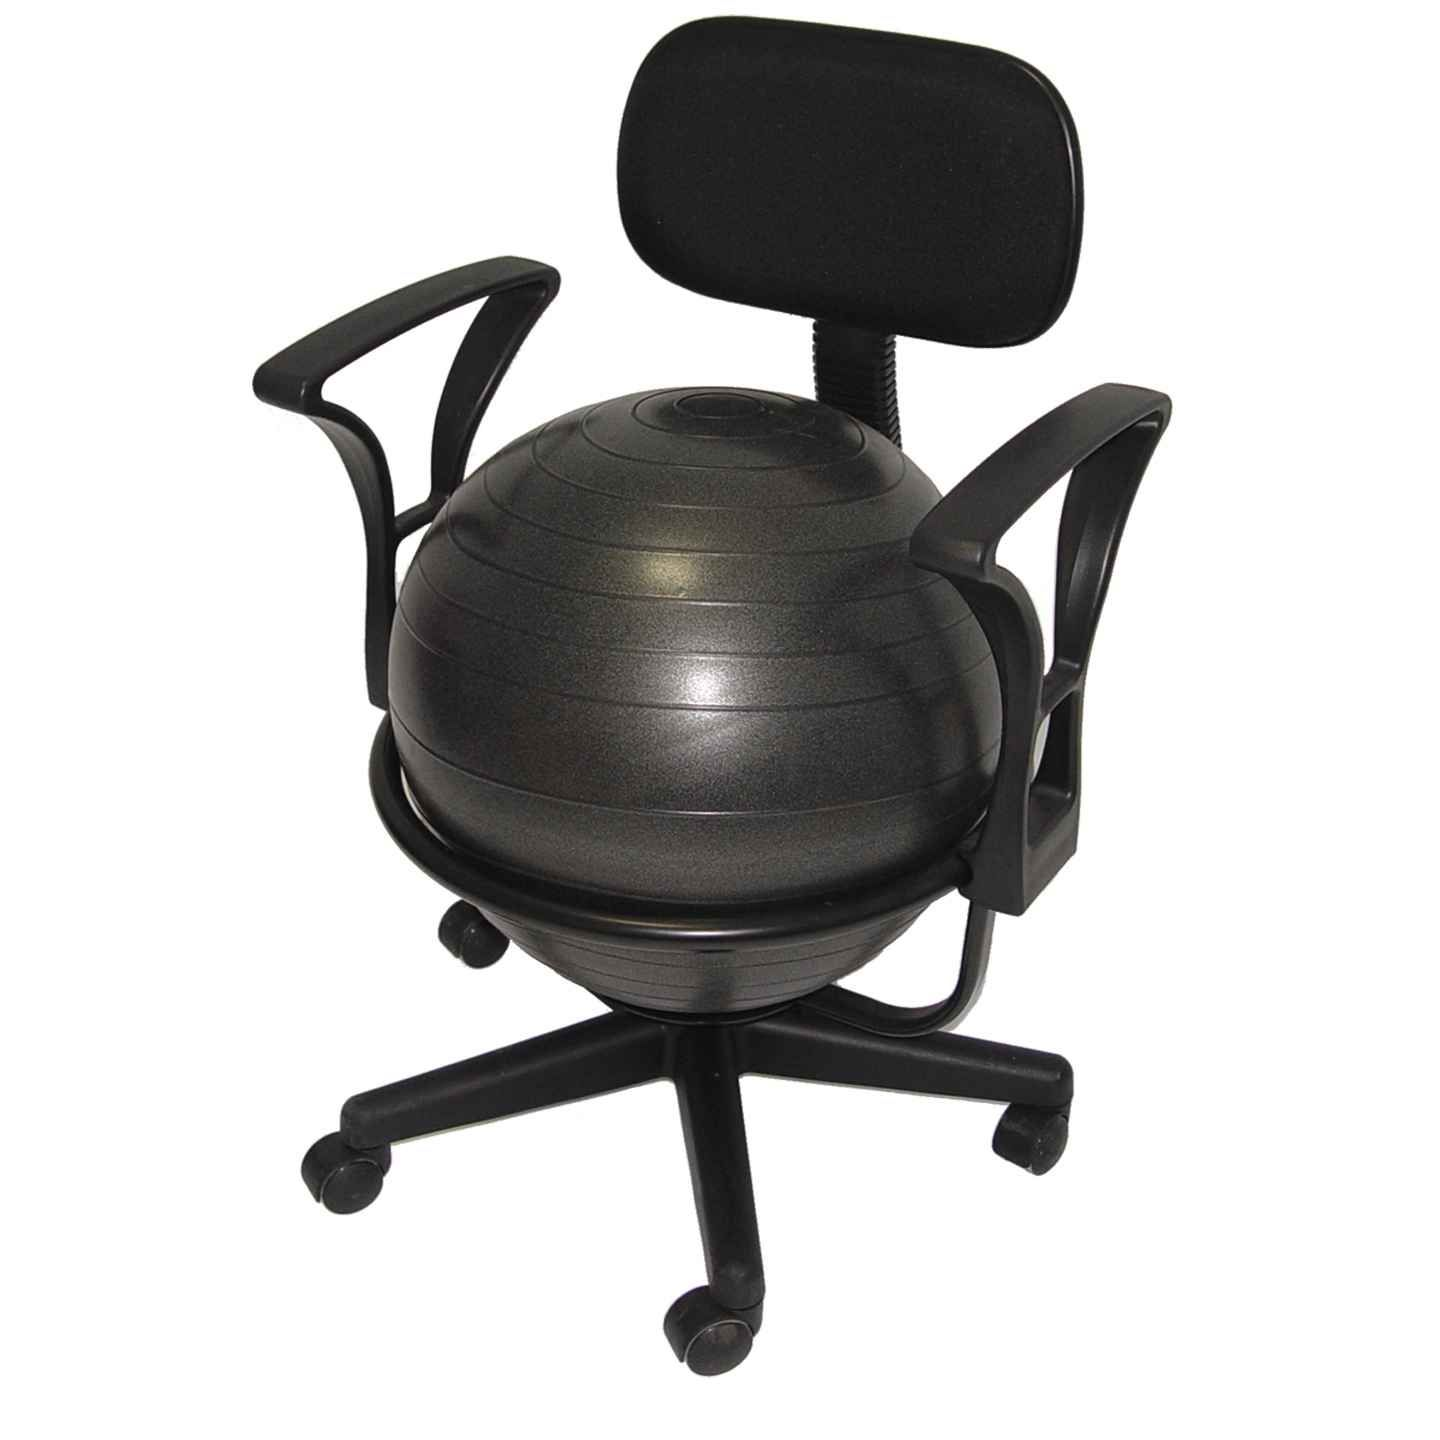 Aeromat black deluxe ergo ball chair studio finds